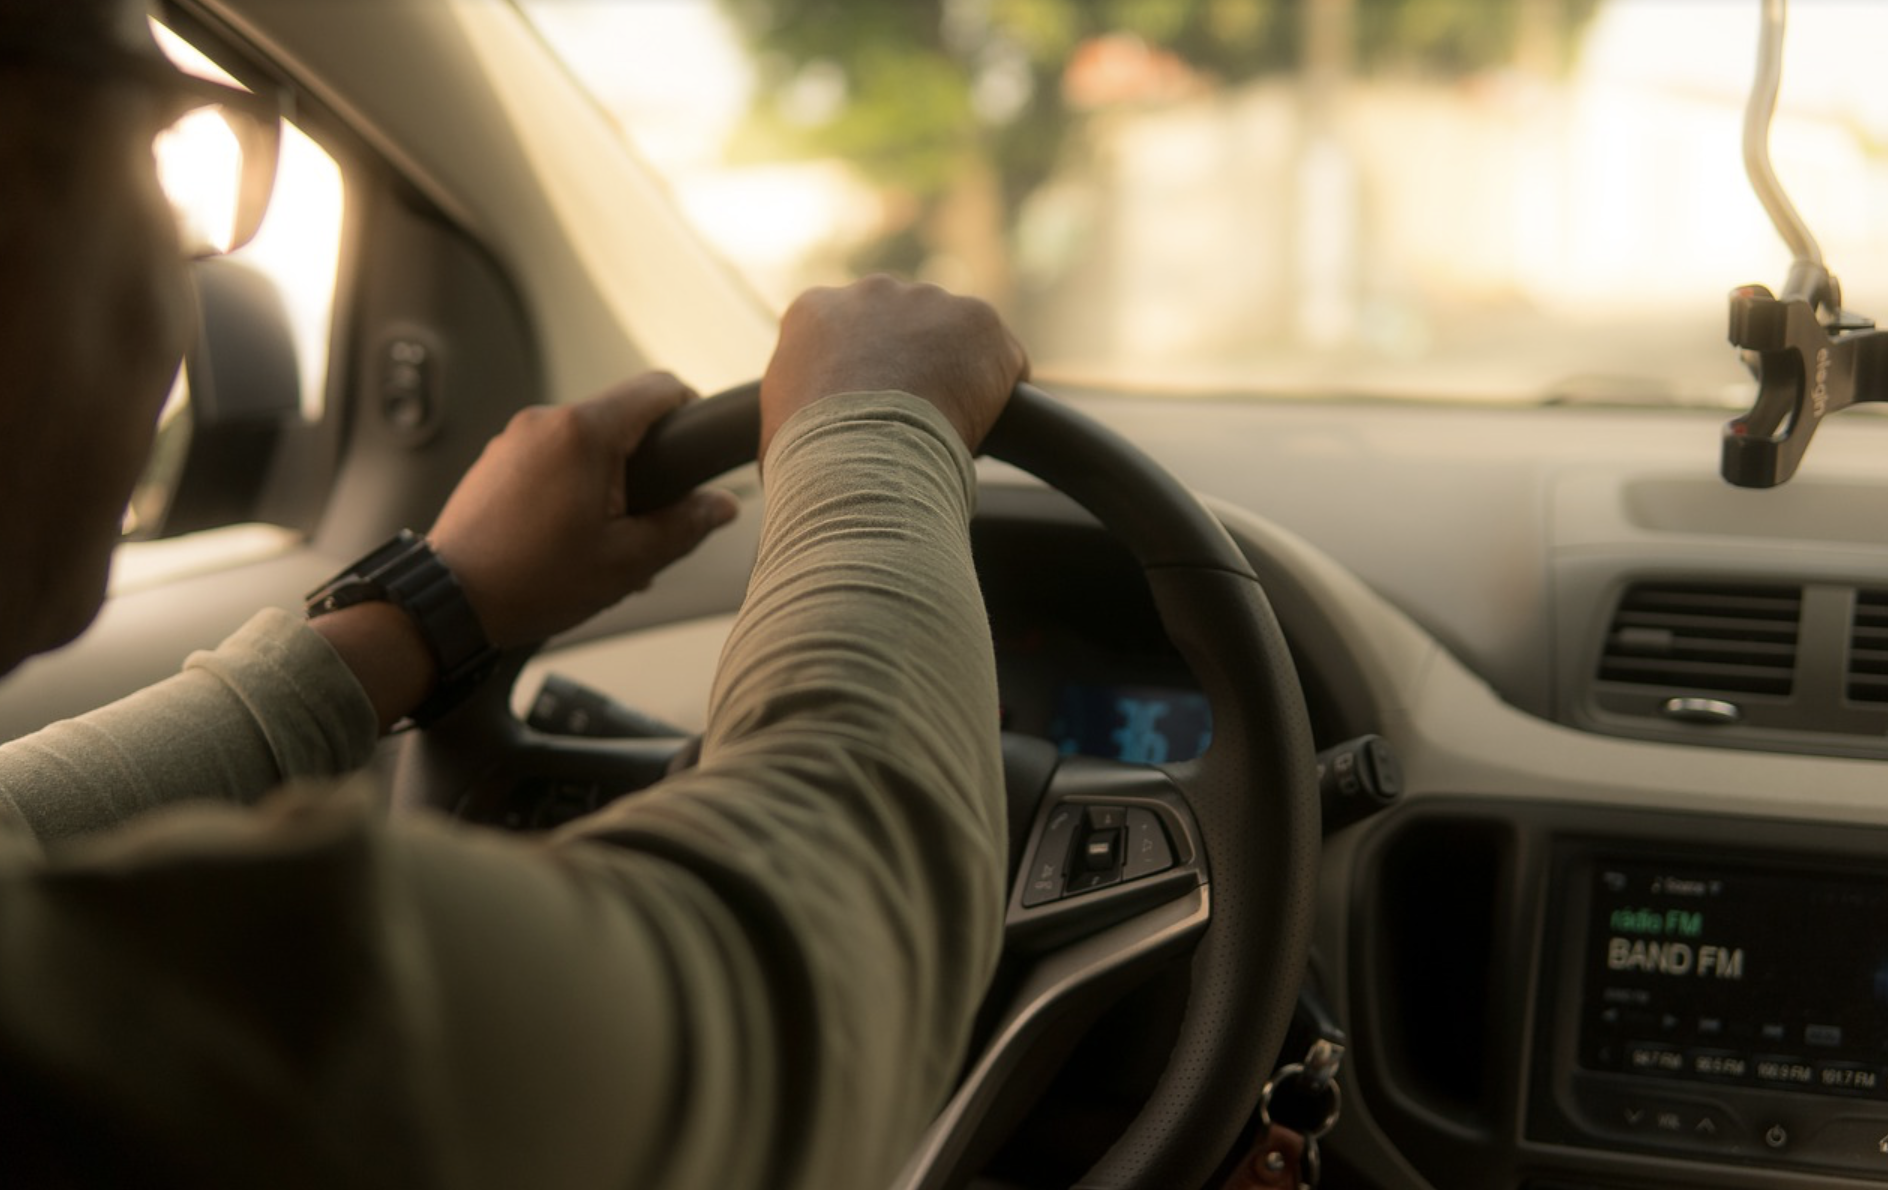 Are You an Uber Driver? All You Need To Know About Tax Deductions for Laptop, Phone & Work-Related Devices